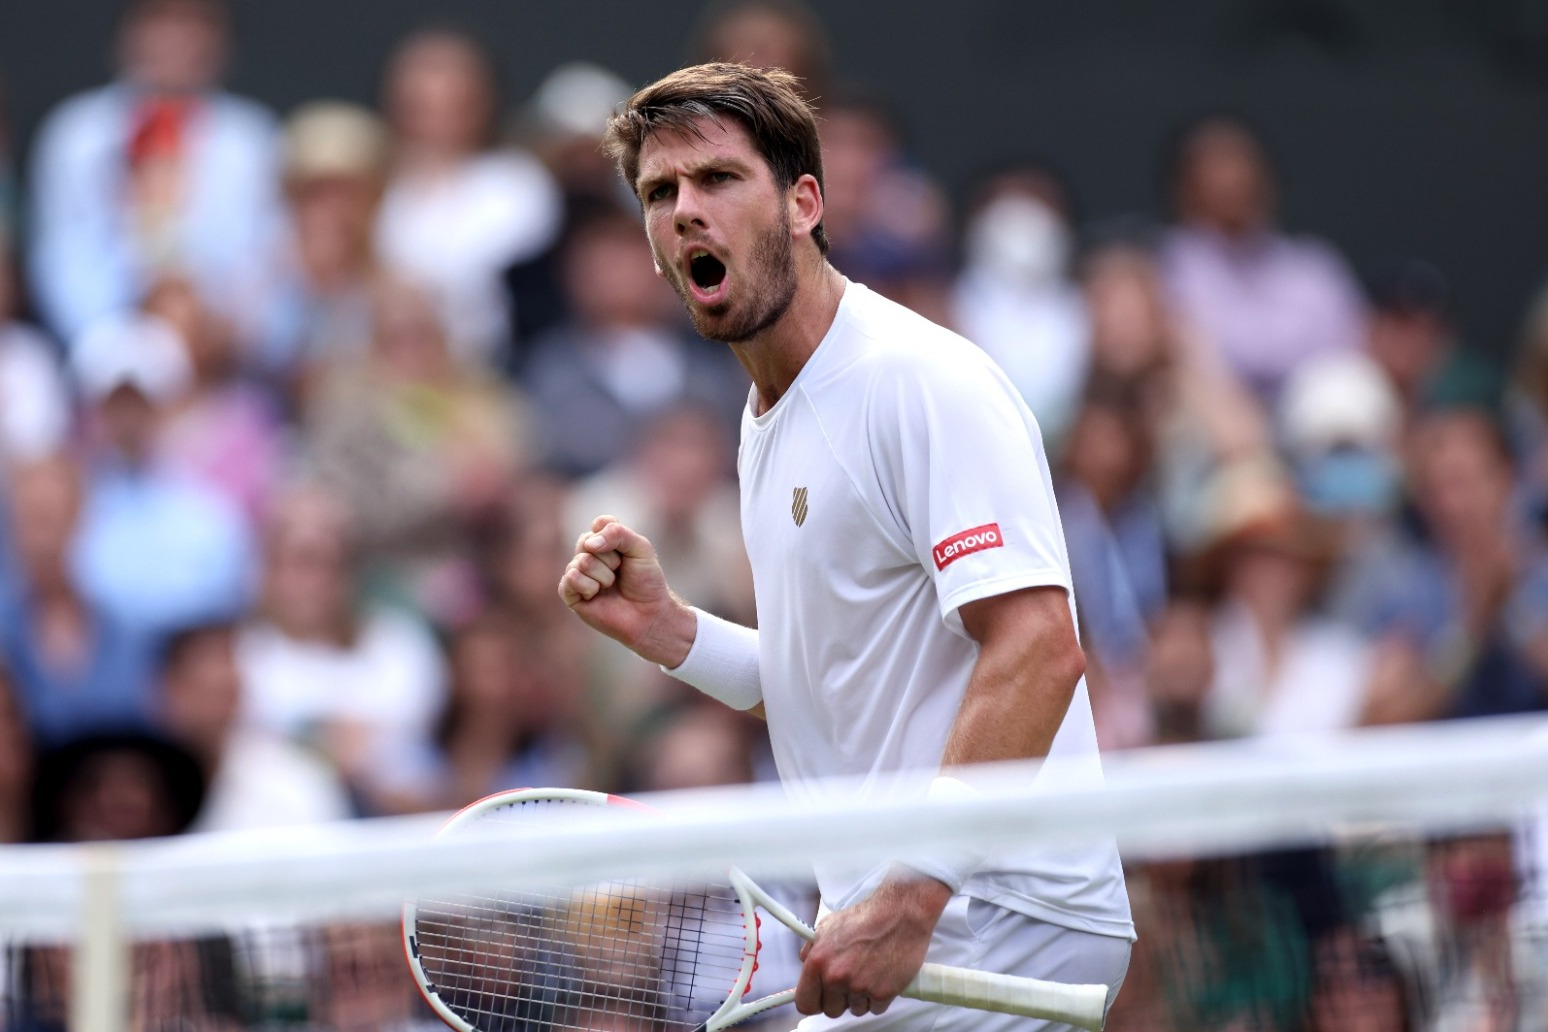 Cameron Norrie eases past Denis Shapovalov to reach San Diego Open semi-finals